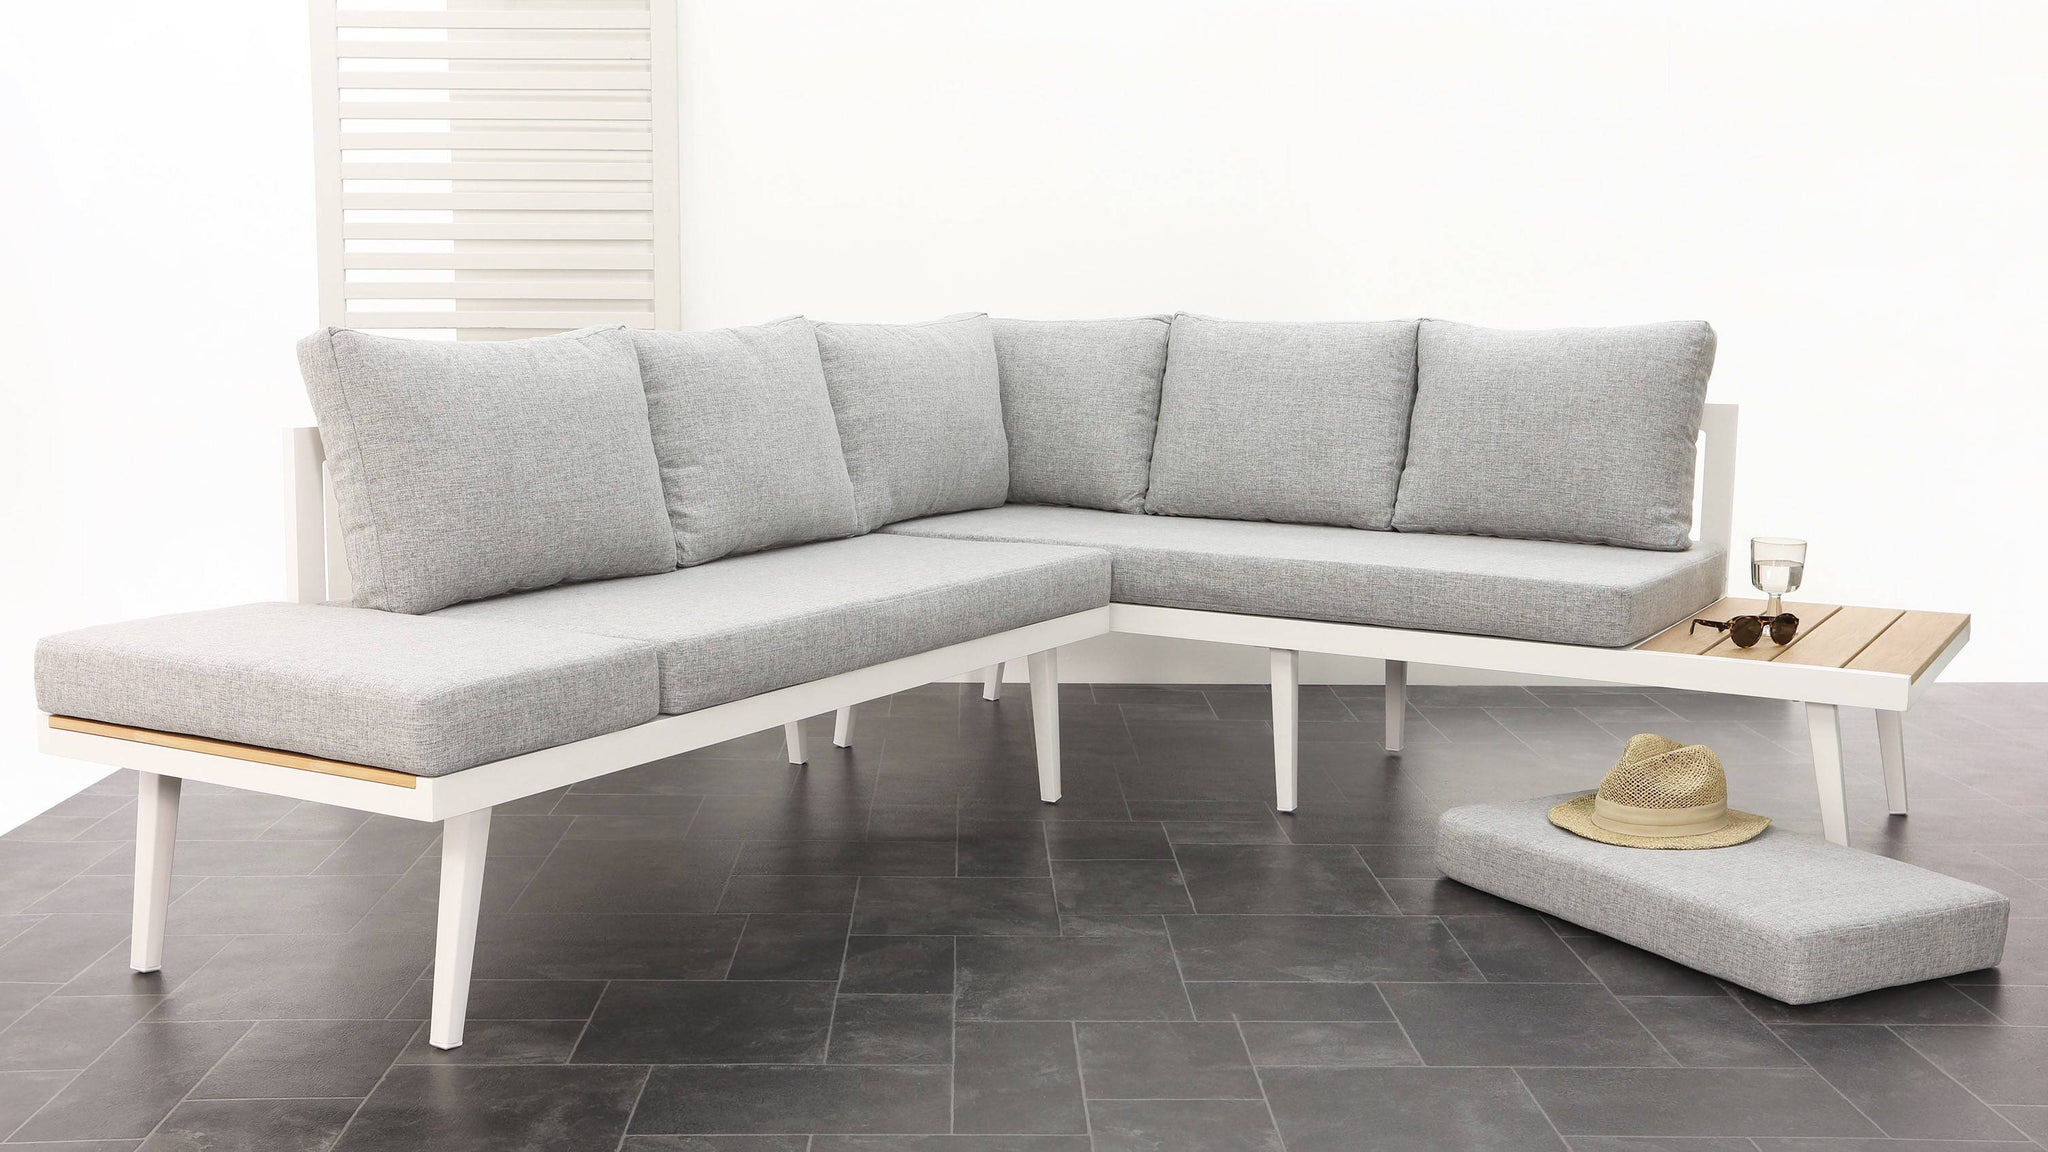 Large outdoor light grey corner bench